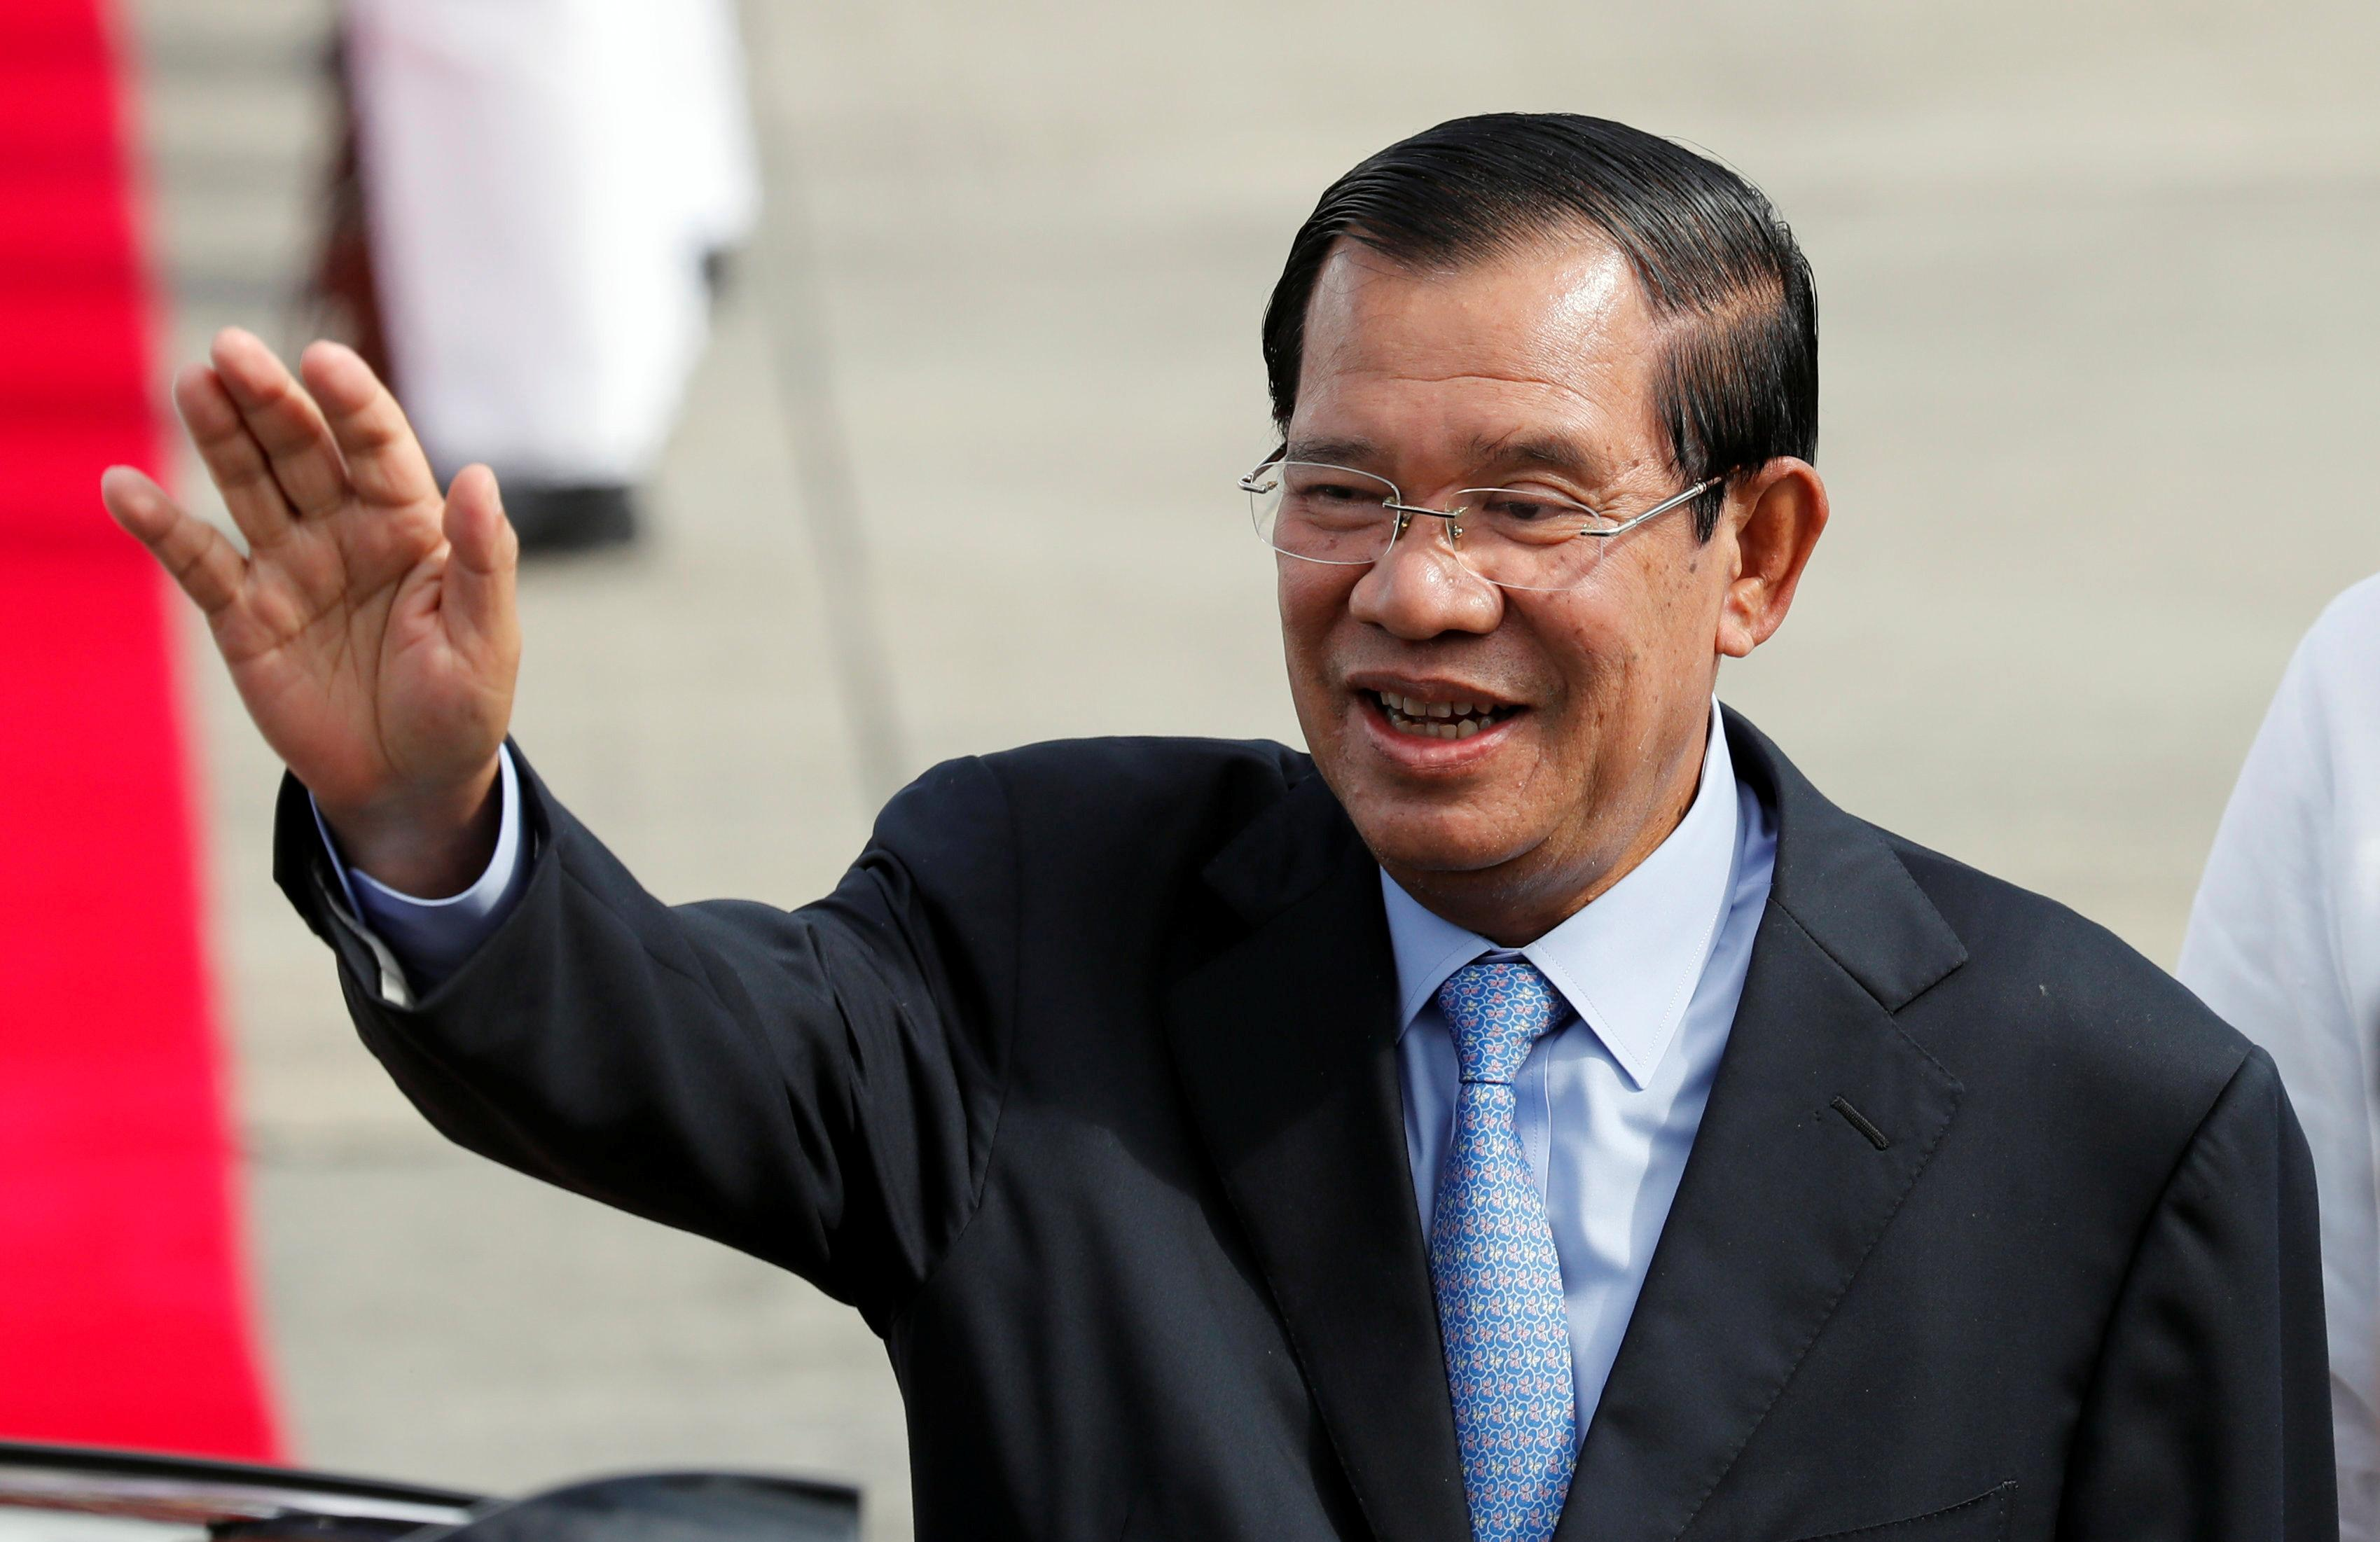 Cambodia's Prime Minister Hun Sen waves to well wishers upon his arrival to attend the Association of South East Asian Nations (ASEAN) Summit and related meetings in Clark, Pampanga in northern Philippines November 11, 2017. Erik De Castro